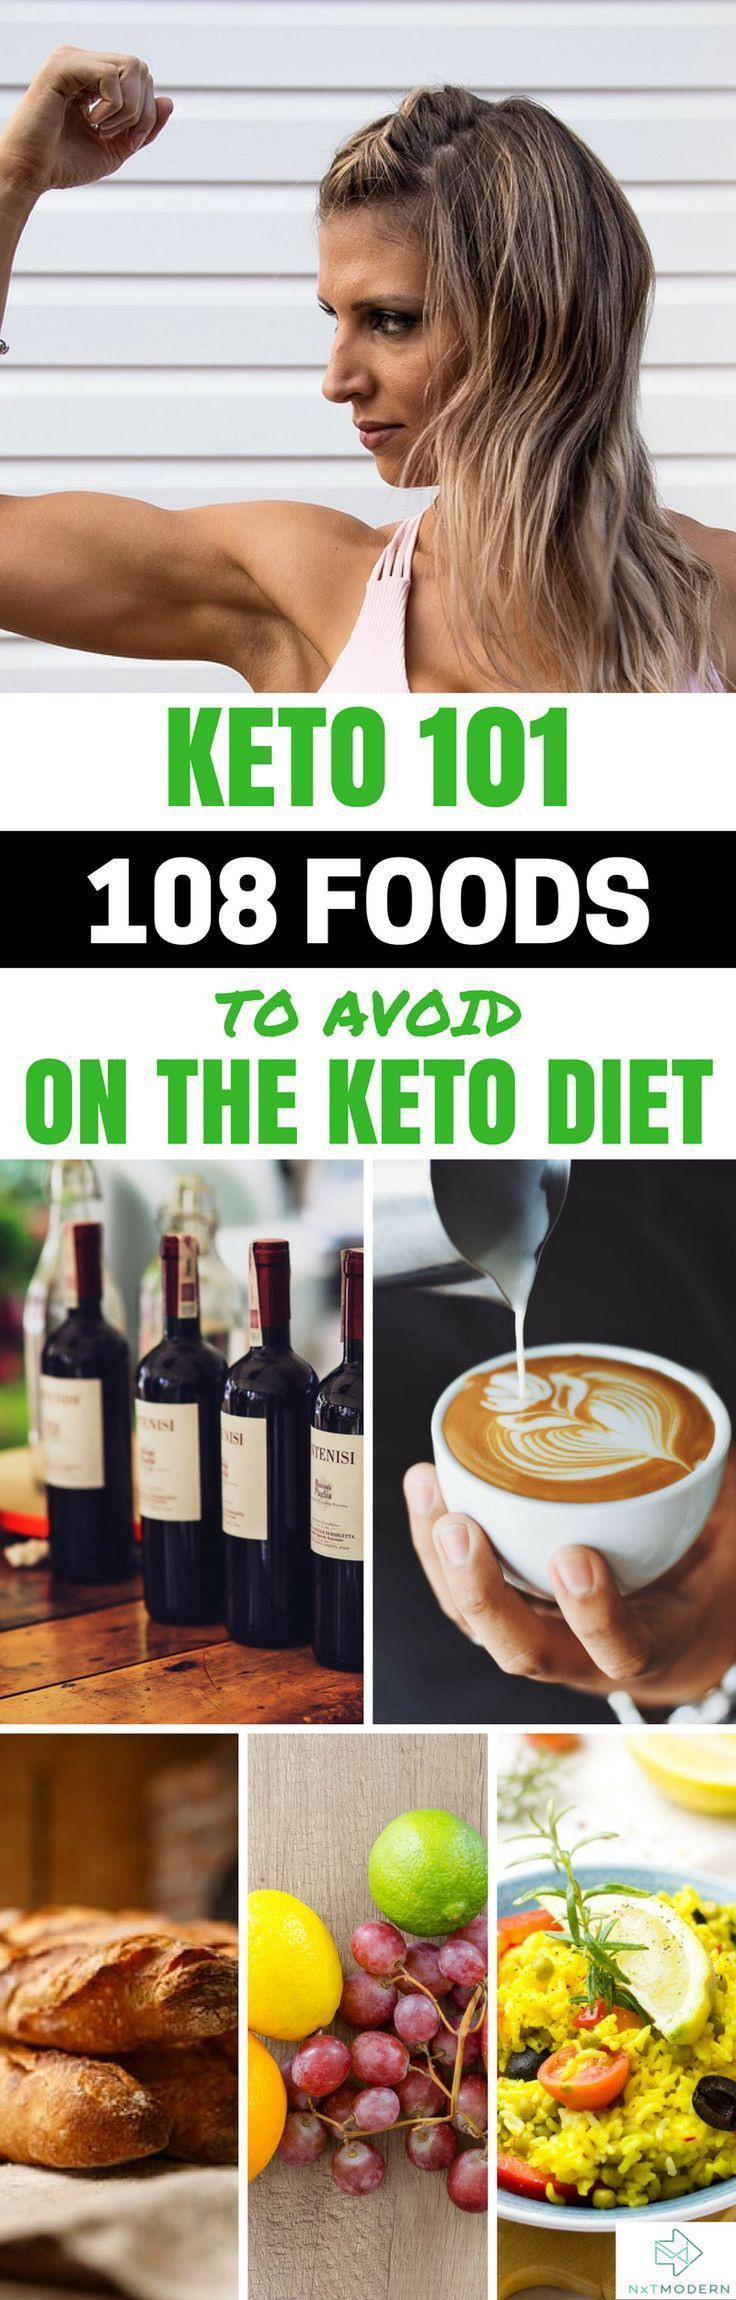 Foods you should avoid on a keto diet keto ketodiet